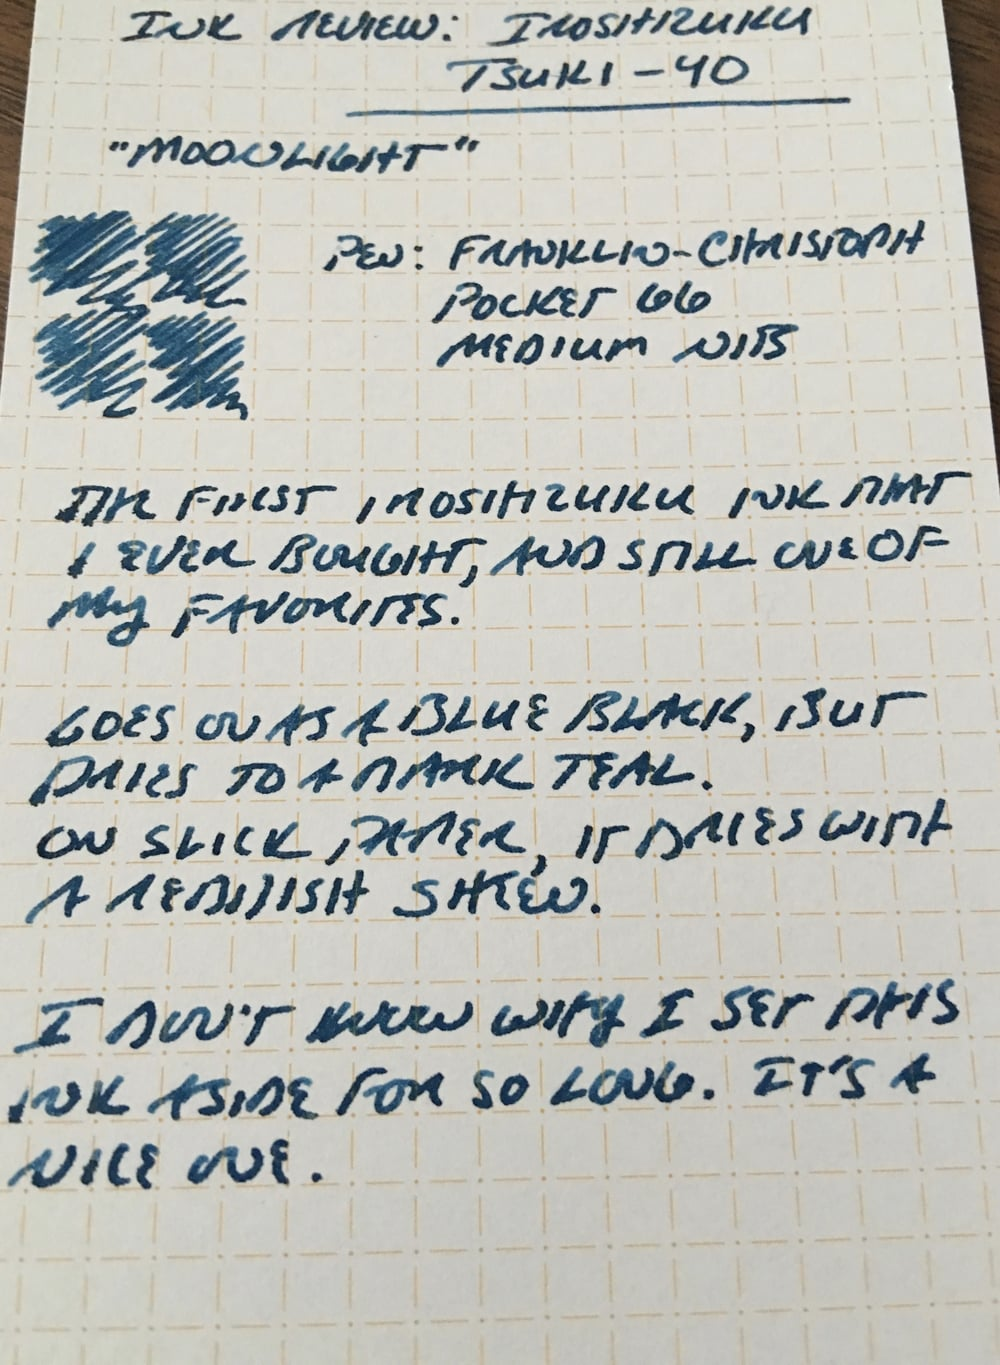 Tsuki-Yo writing sample on Nock Co. Dot-Dash Index Card.